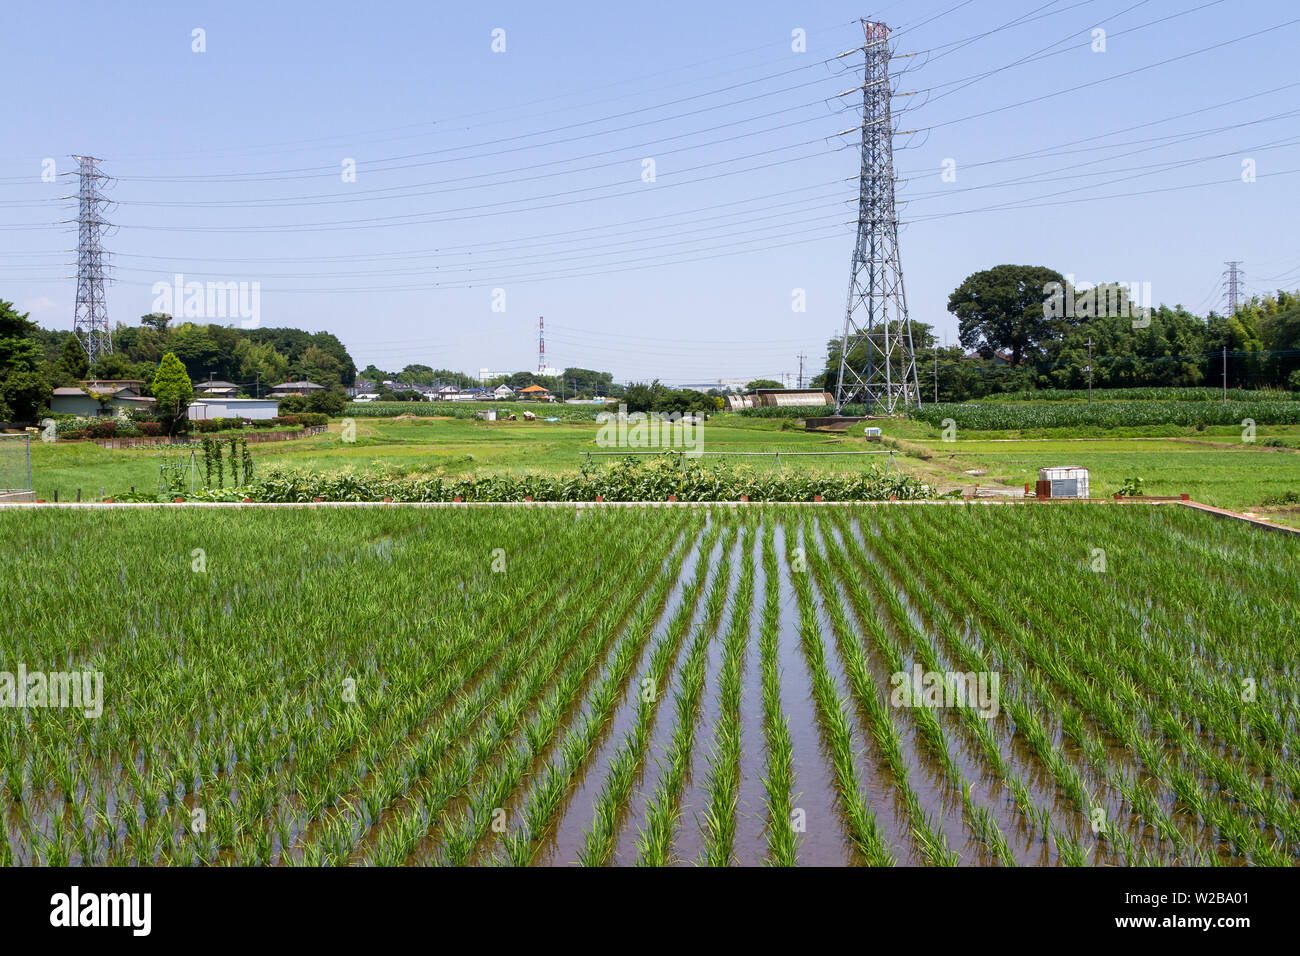 Electricity pylons over flooded rice-fields in rural Kanagawa, Japan. Monday June25th 2018 - Stock Image